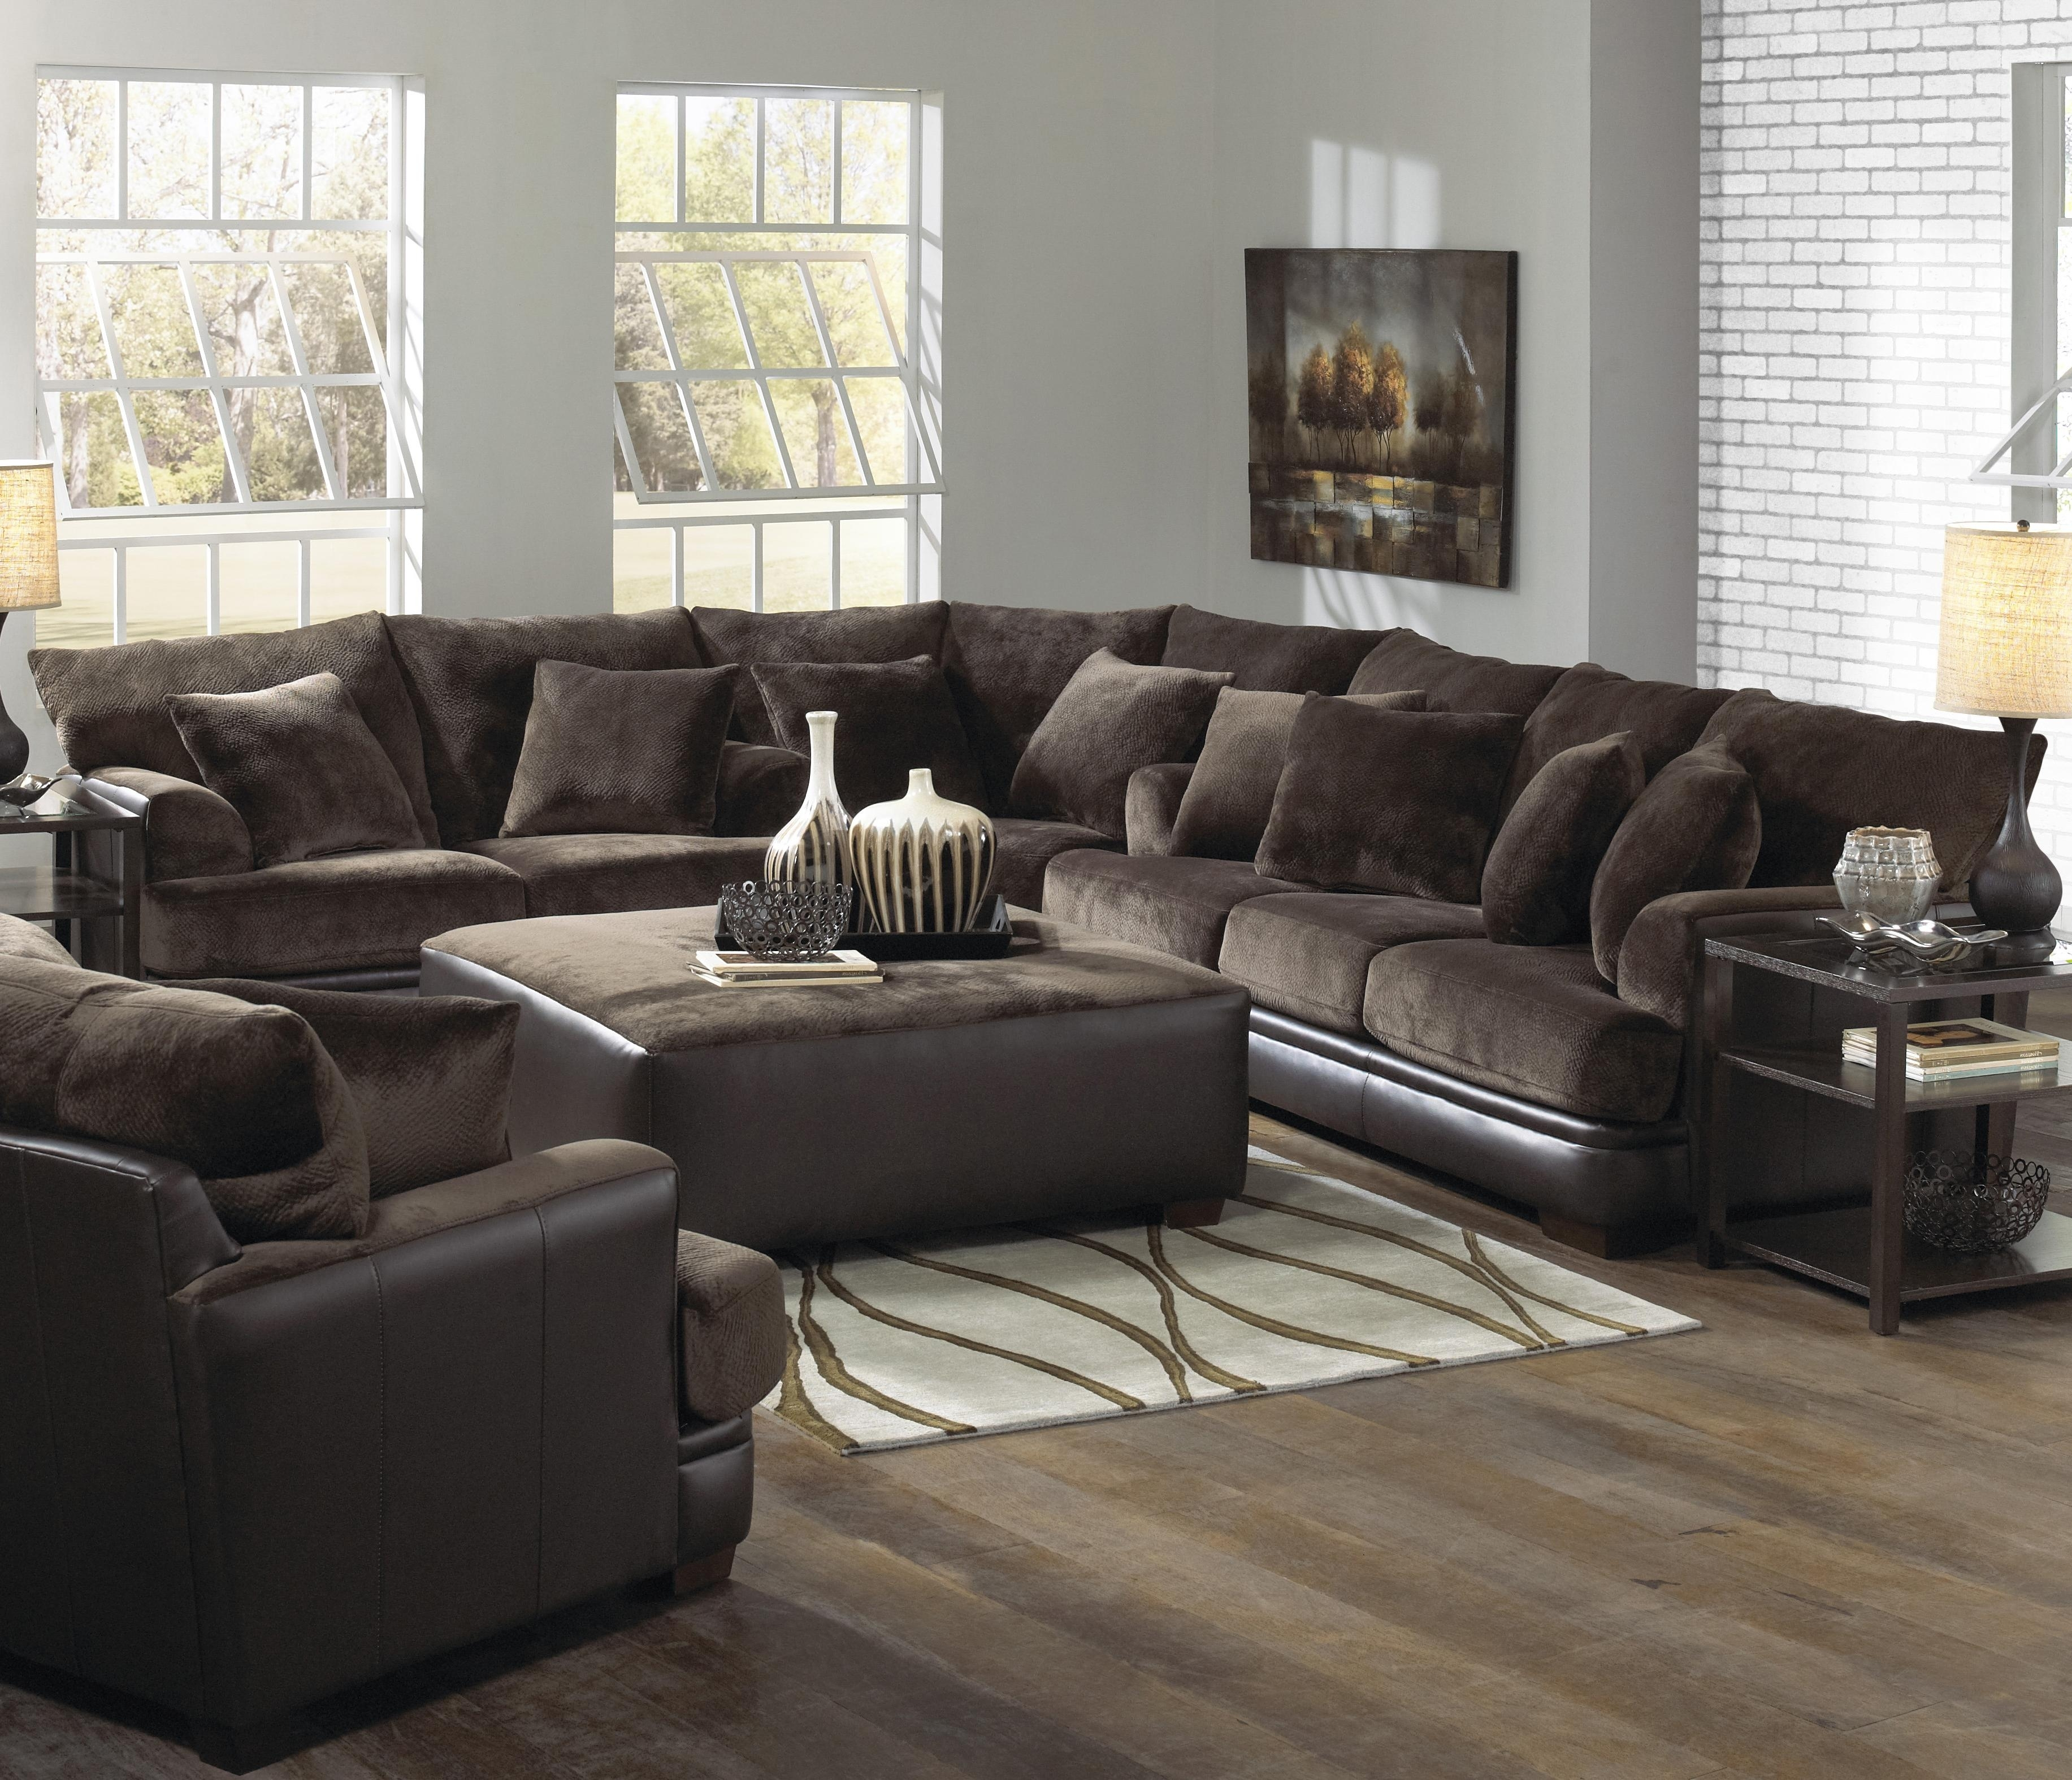 15 Ideas of Extra Large U Shaped Sectionals